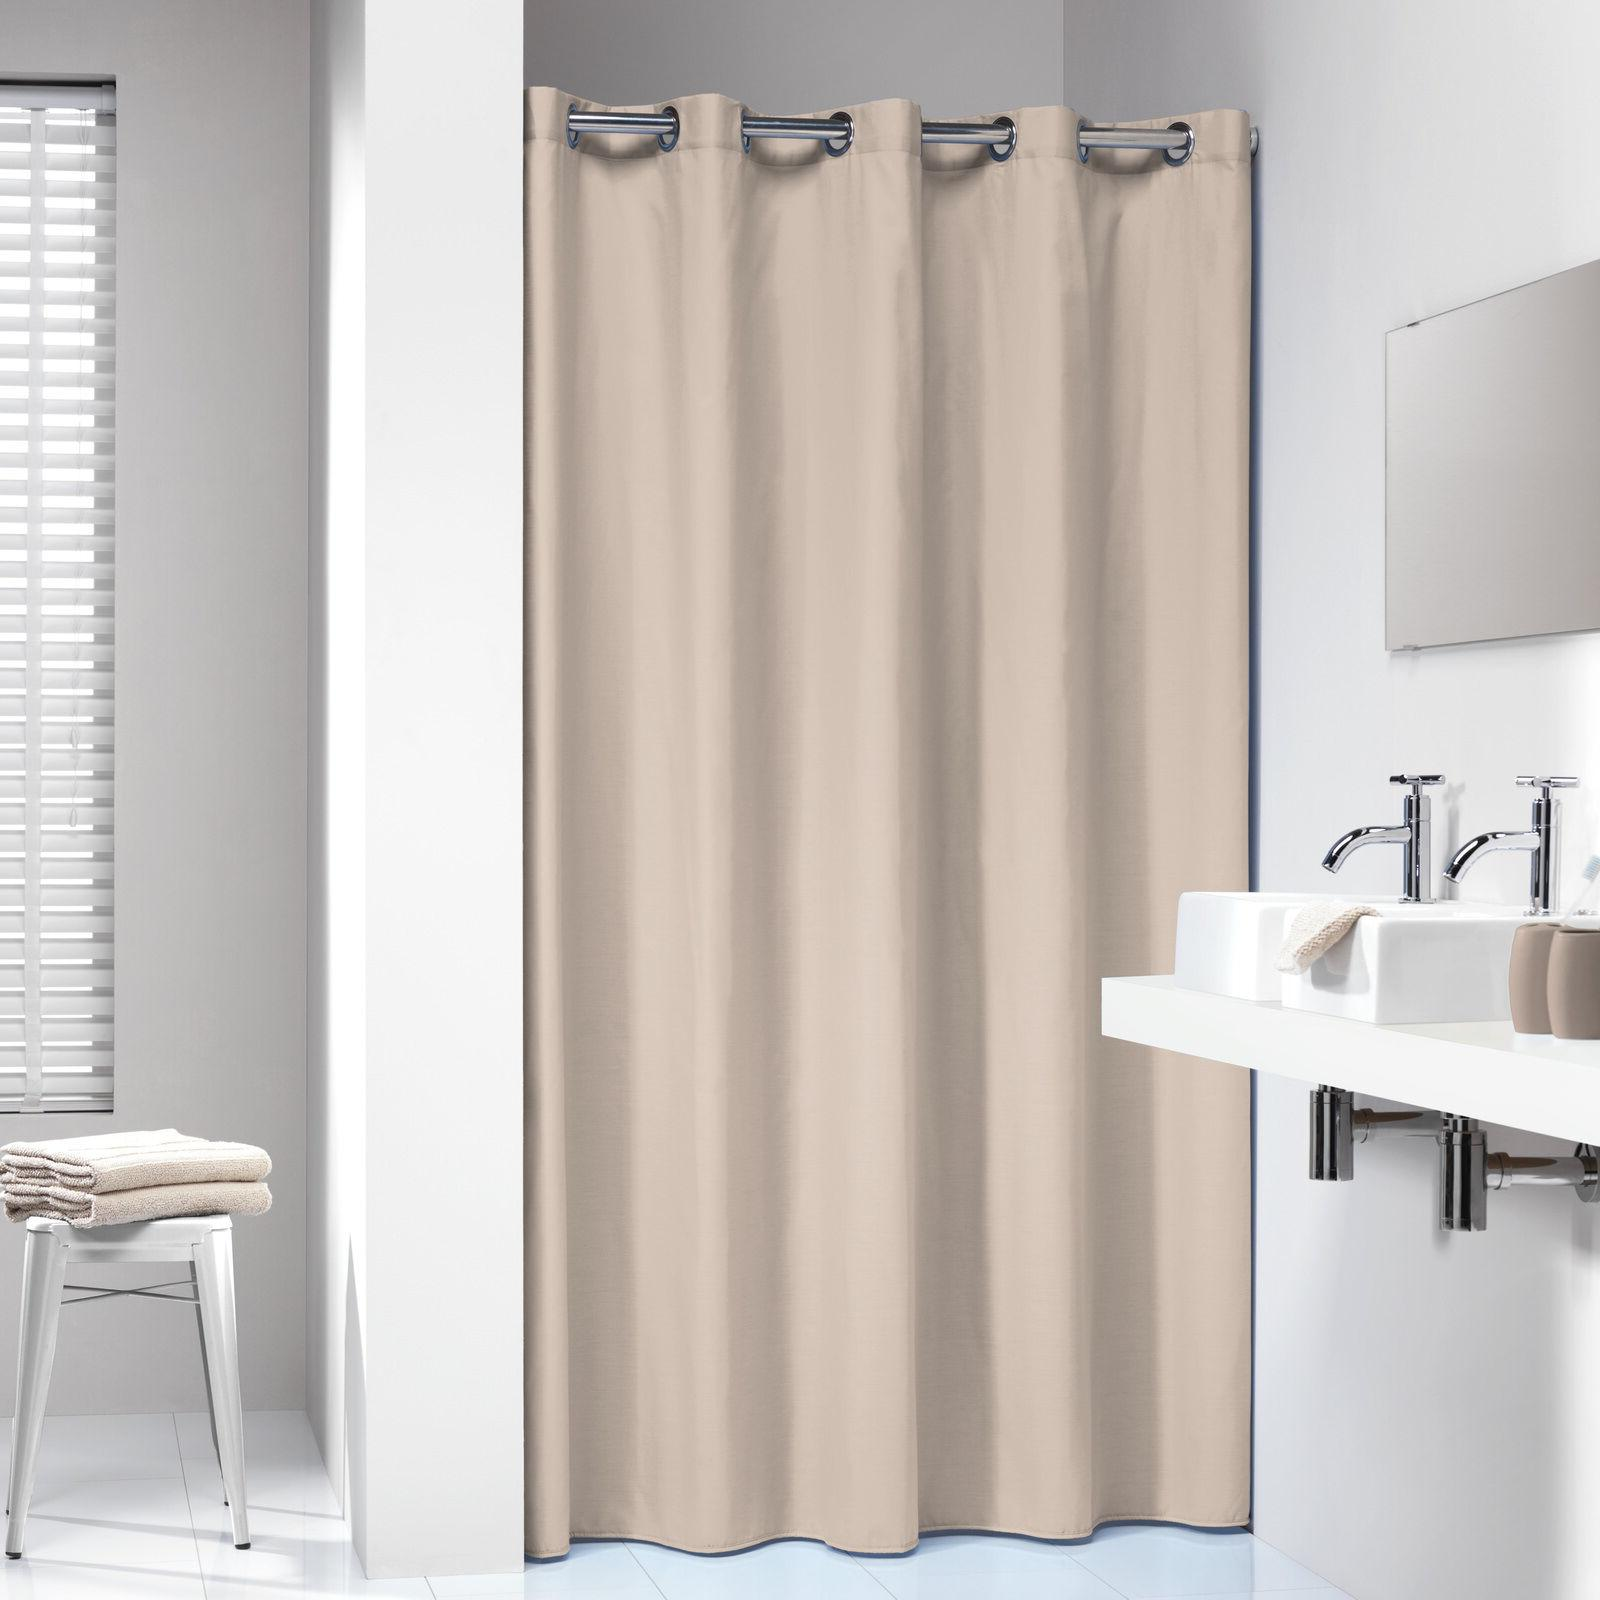 Extra Long Hookless Shower Curtain 72 x 78